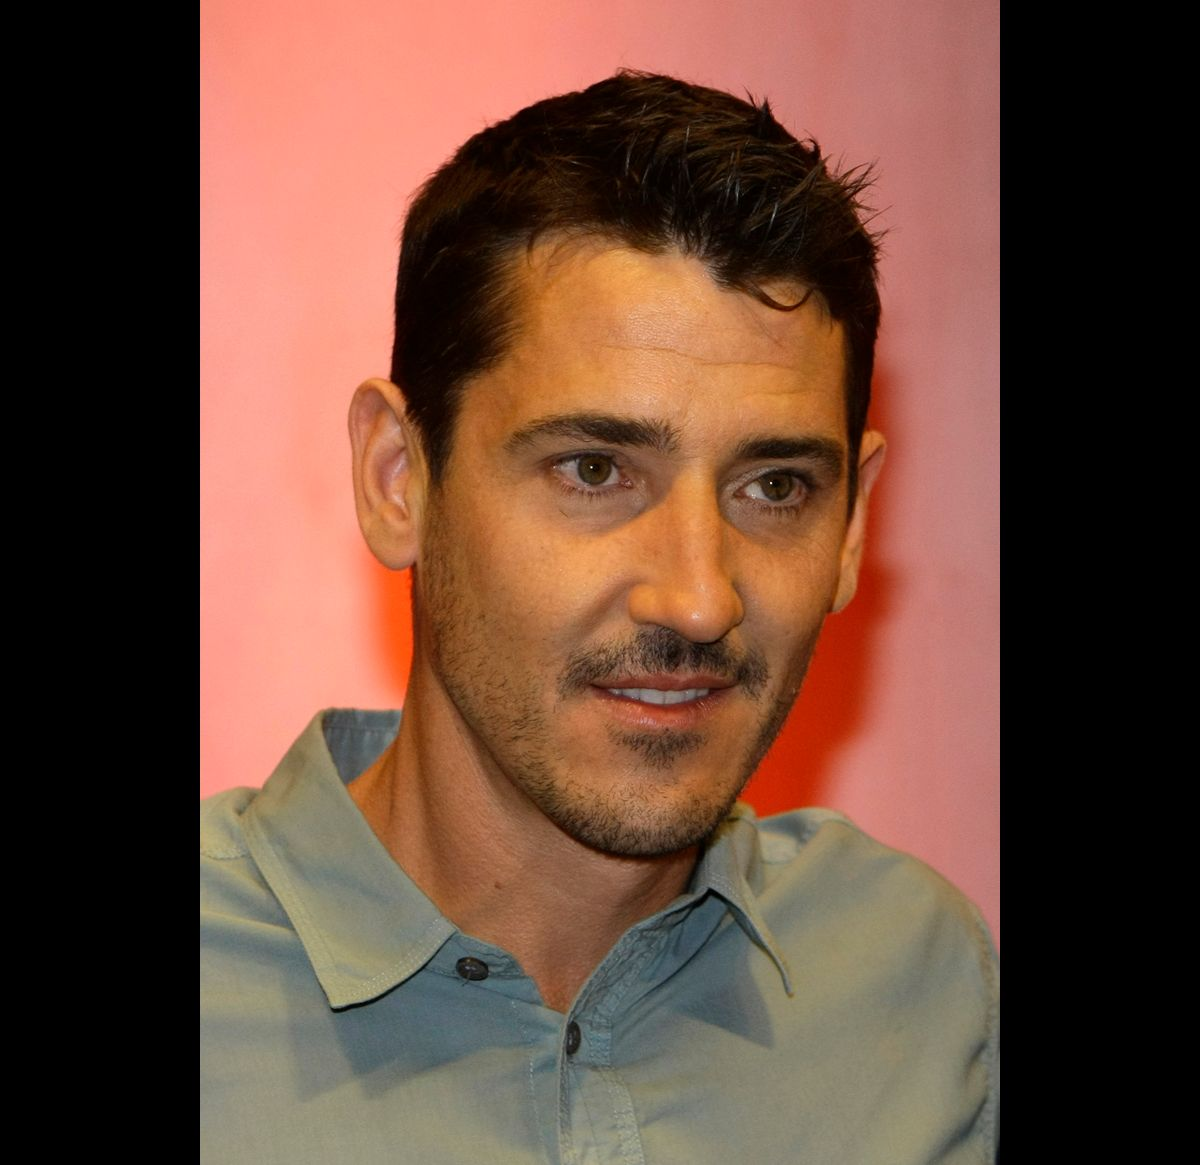 Jonathan Knight of the U.S. band 'New Kids On The Block' poses during a photo call in Munich July 9, 2008. The band, who have reunited after 14 years, are promoting their new single 'Summertime' which will be released in Germany on August 29.    REUTERS/Michaela Rehle (GERMANY) (© Michaela Rehle / Reuters)